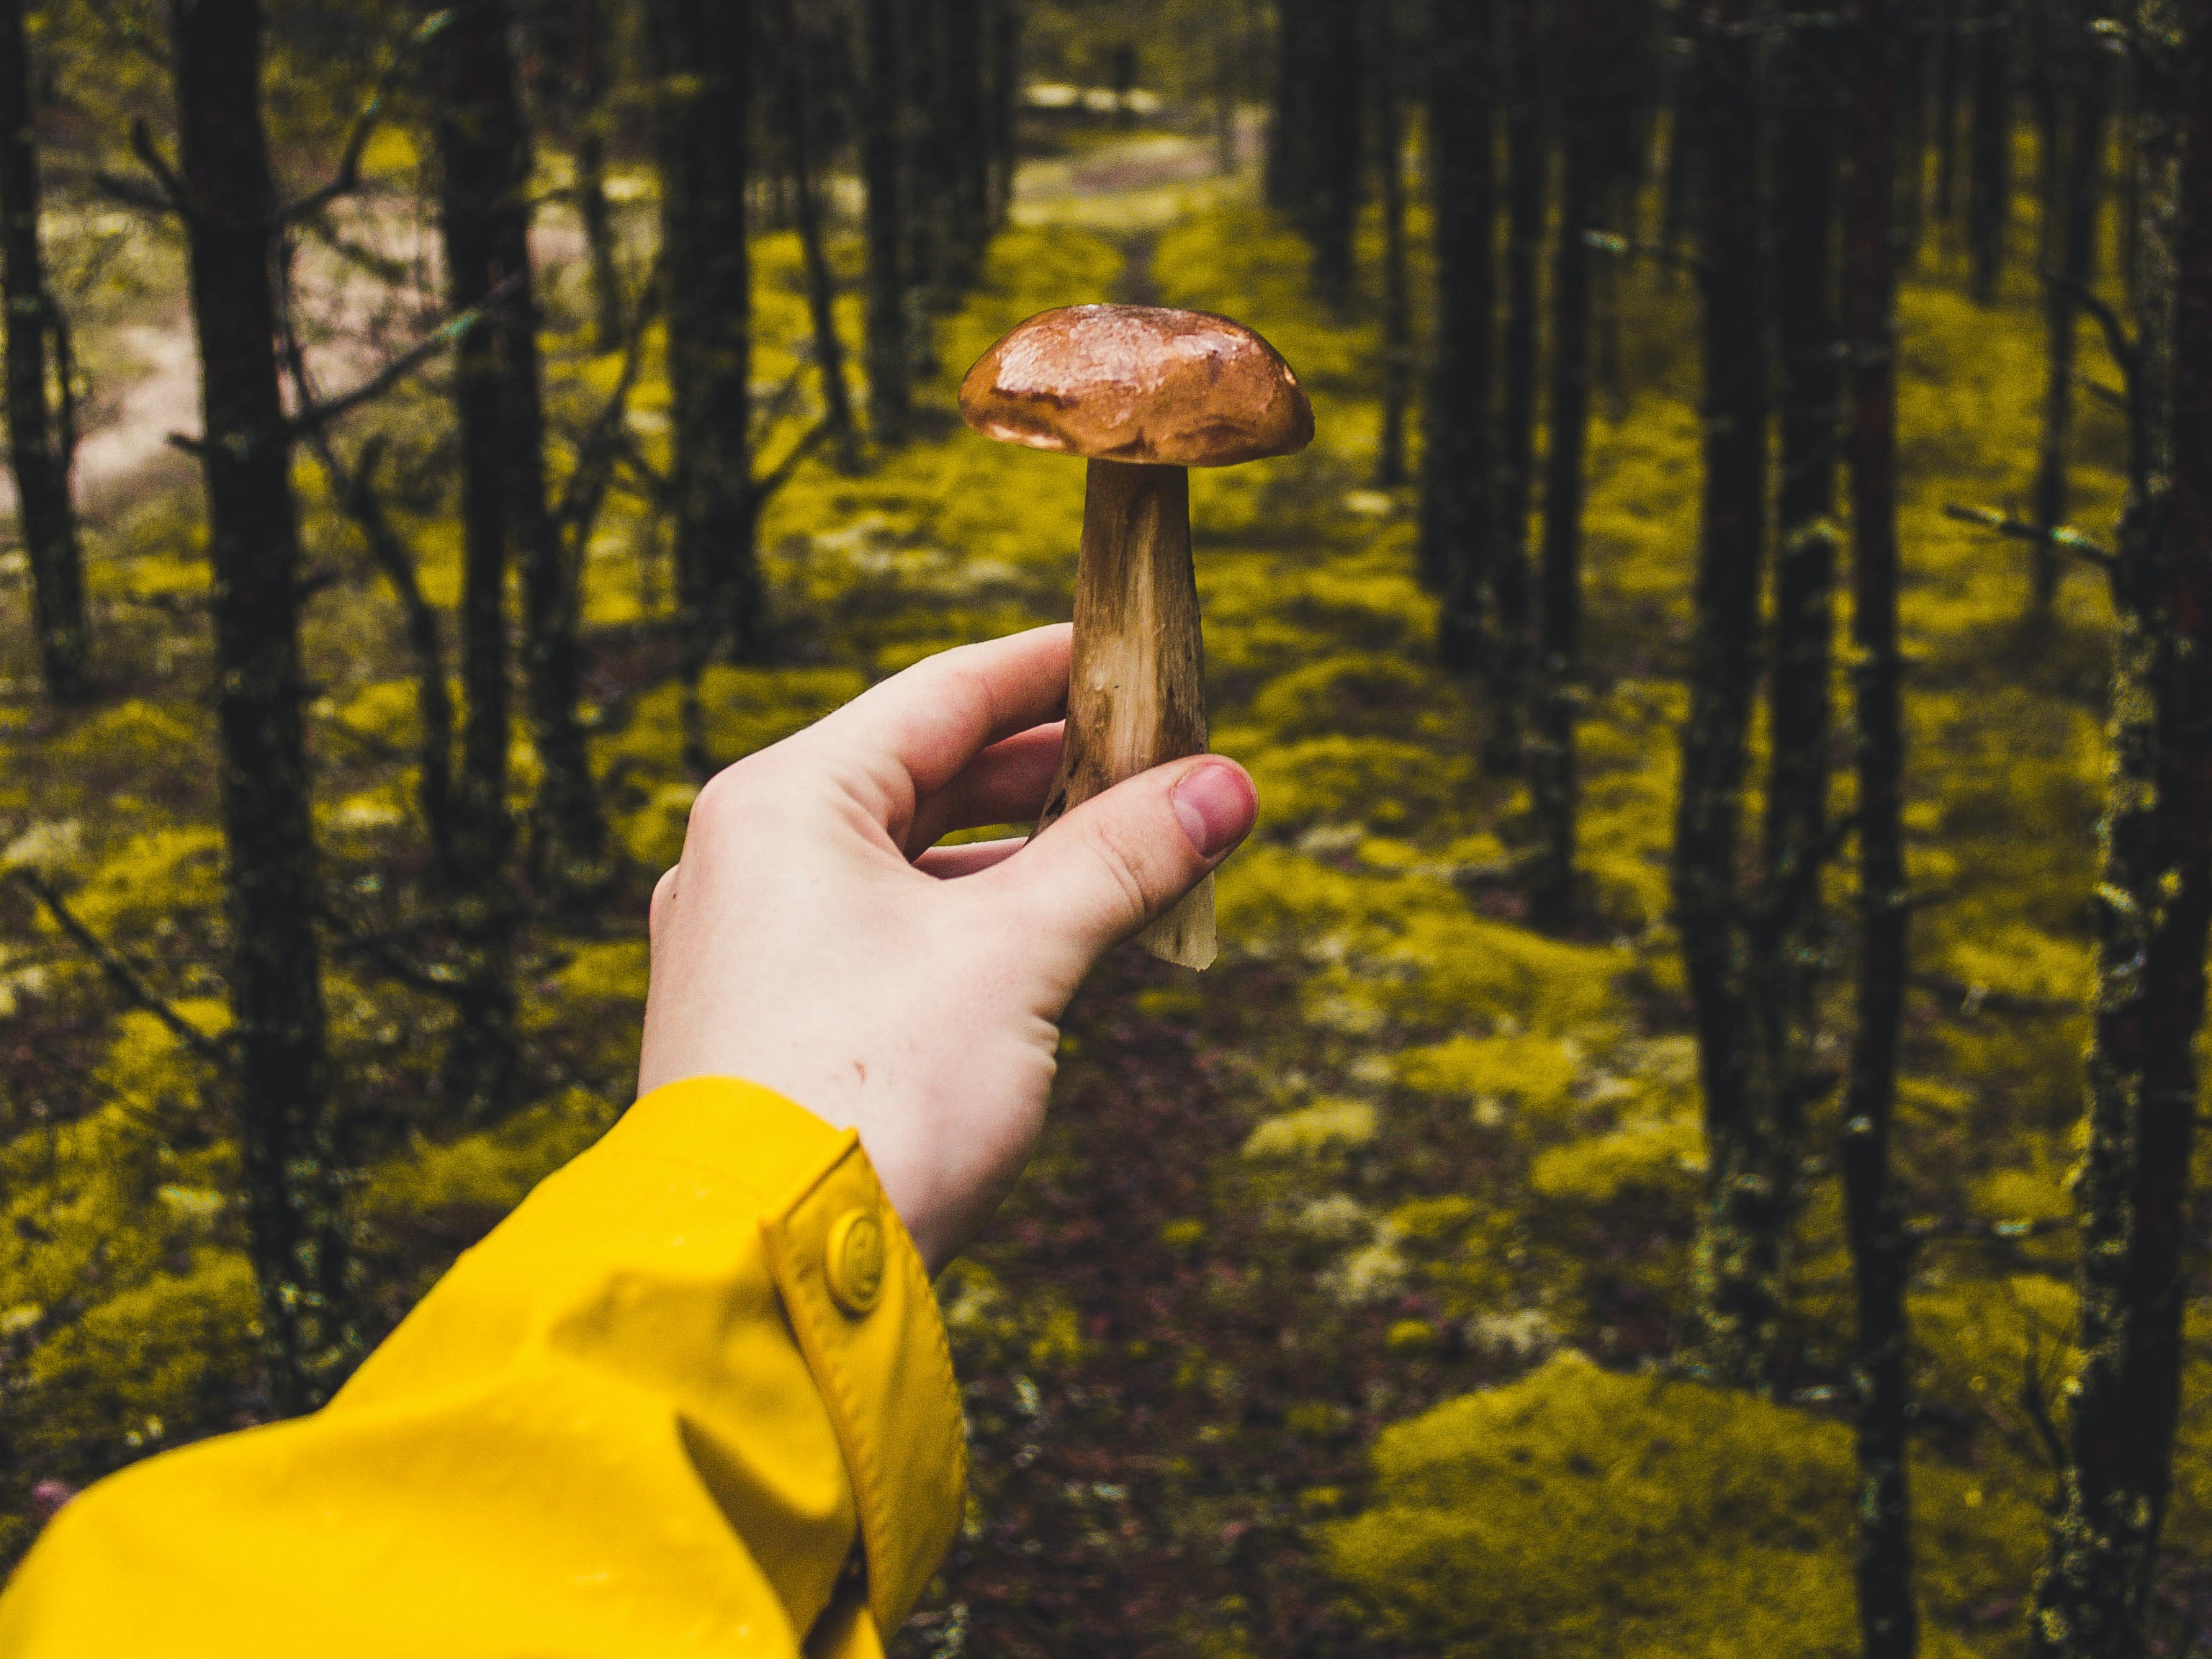 Psychedelics and Virtual Reality Make a Trendy but Illegal Therapy